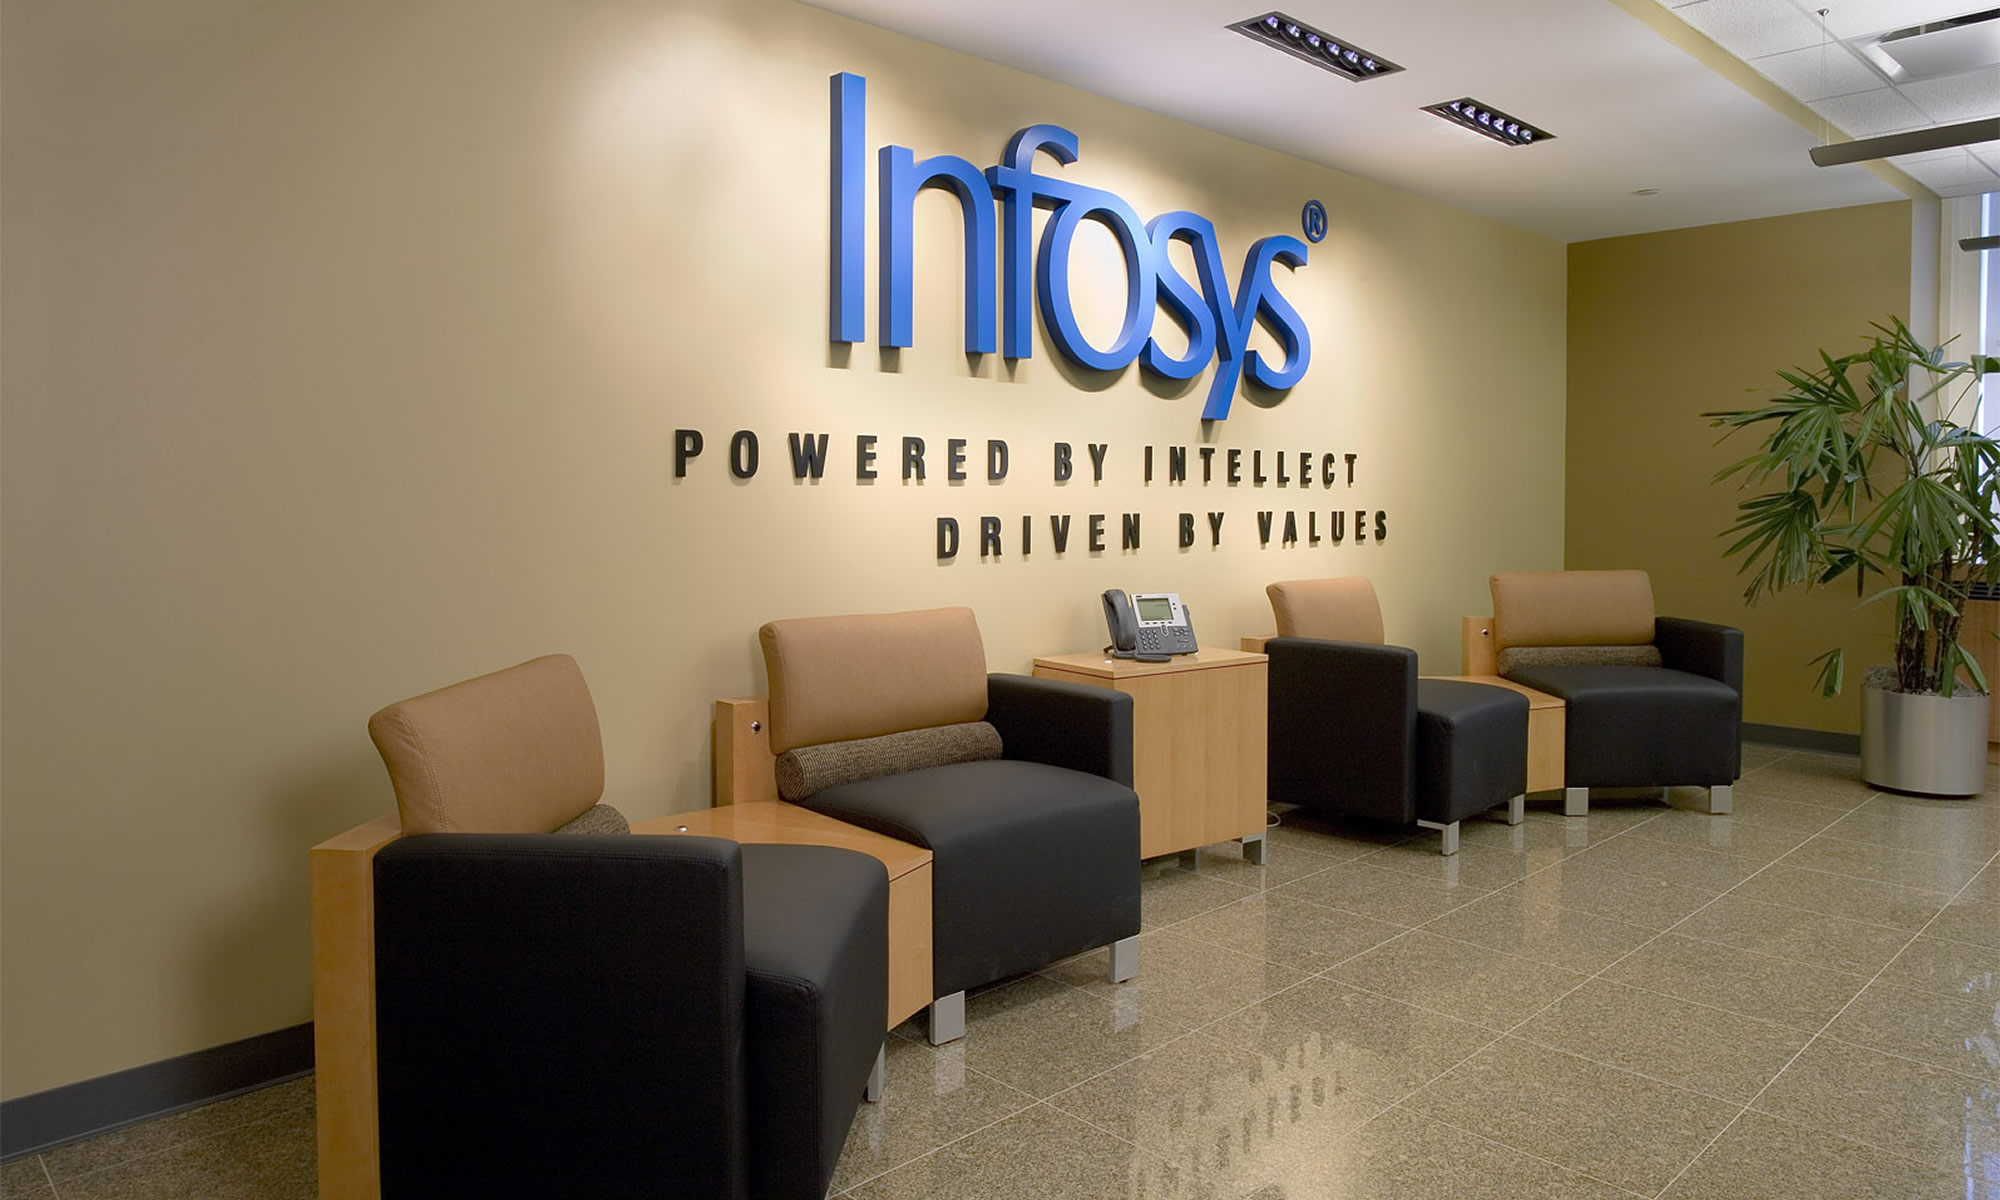 Interview Questions for Infosys | SQL Interview Questions